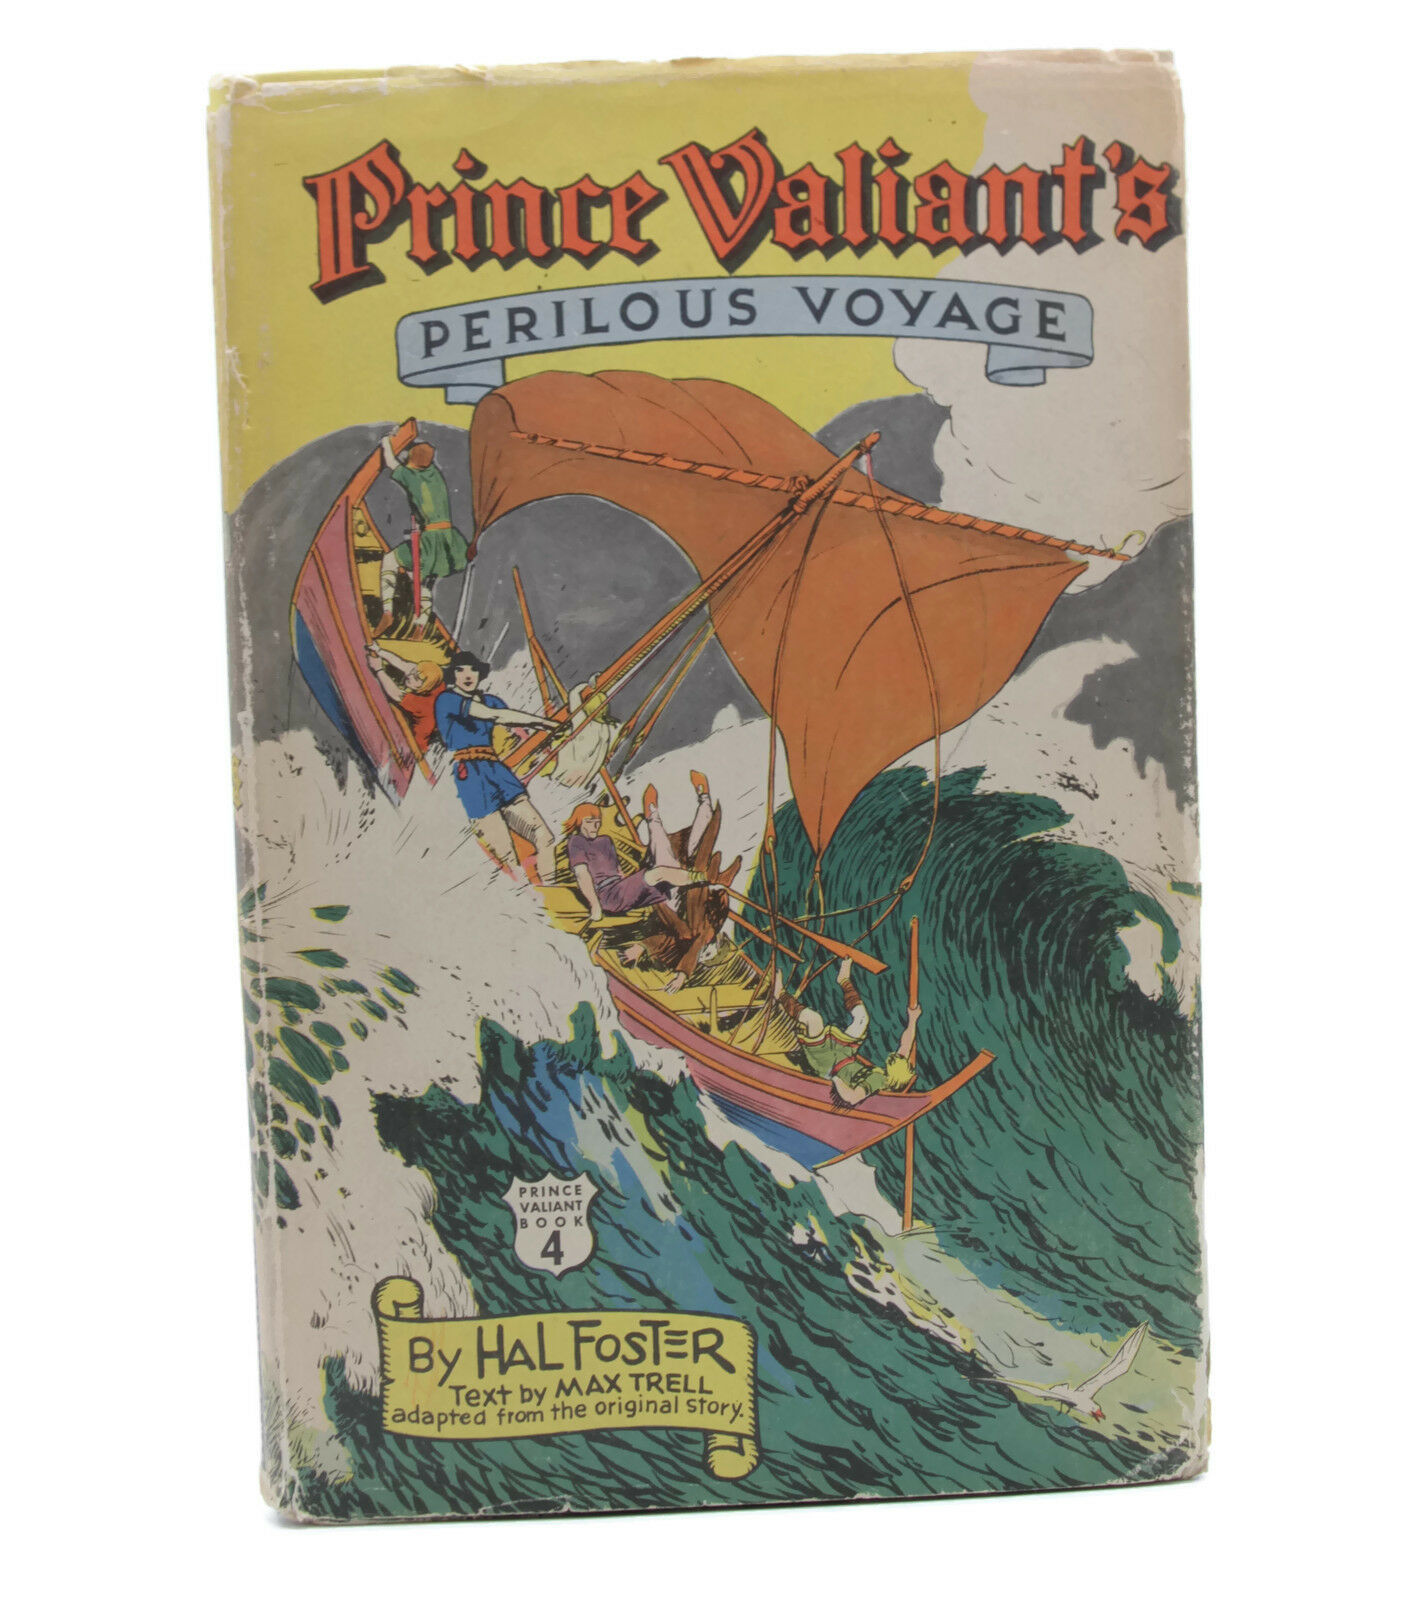 Vintage 1950s Hal Foster Prince Valiant Perilous Voyage Hardcover Book DJ